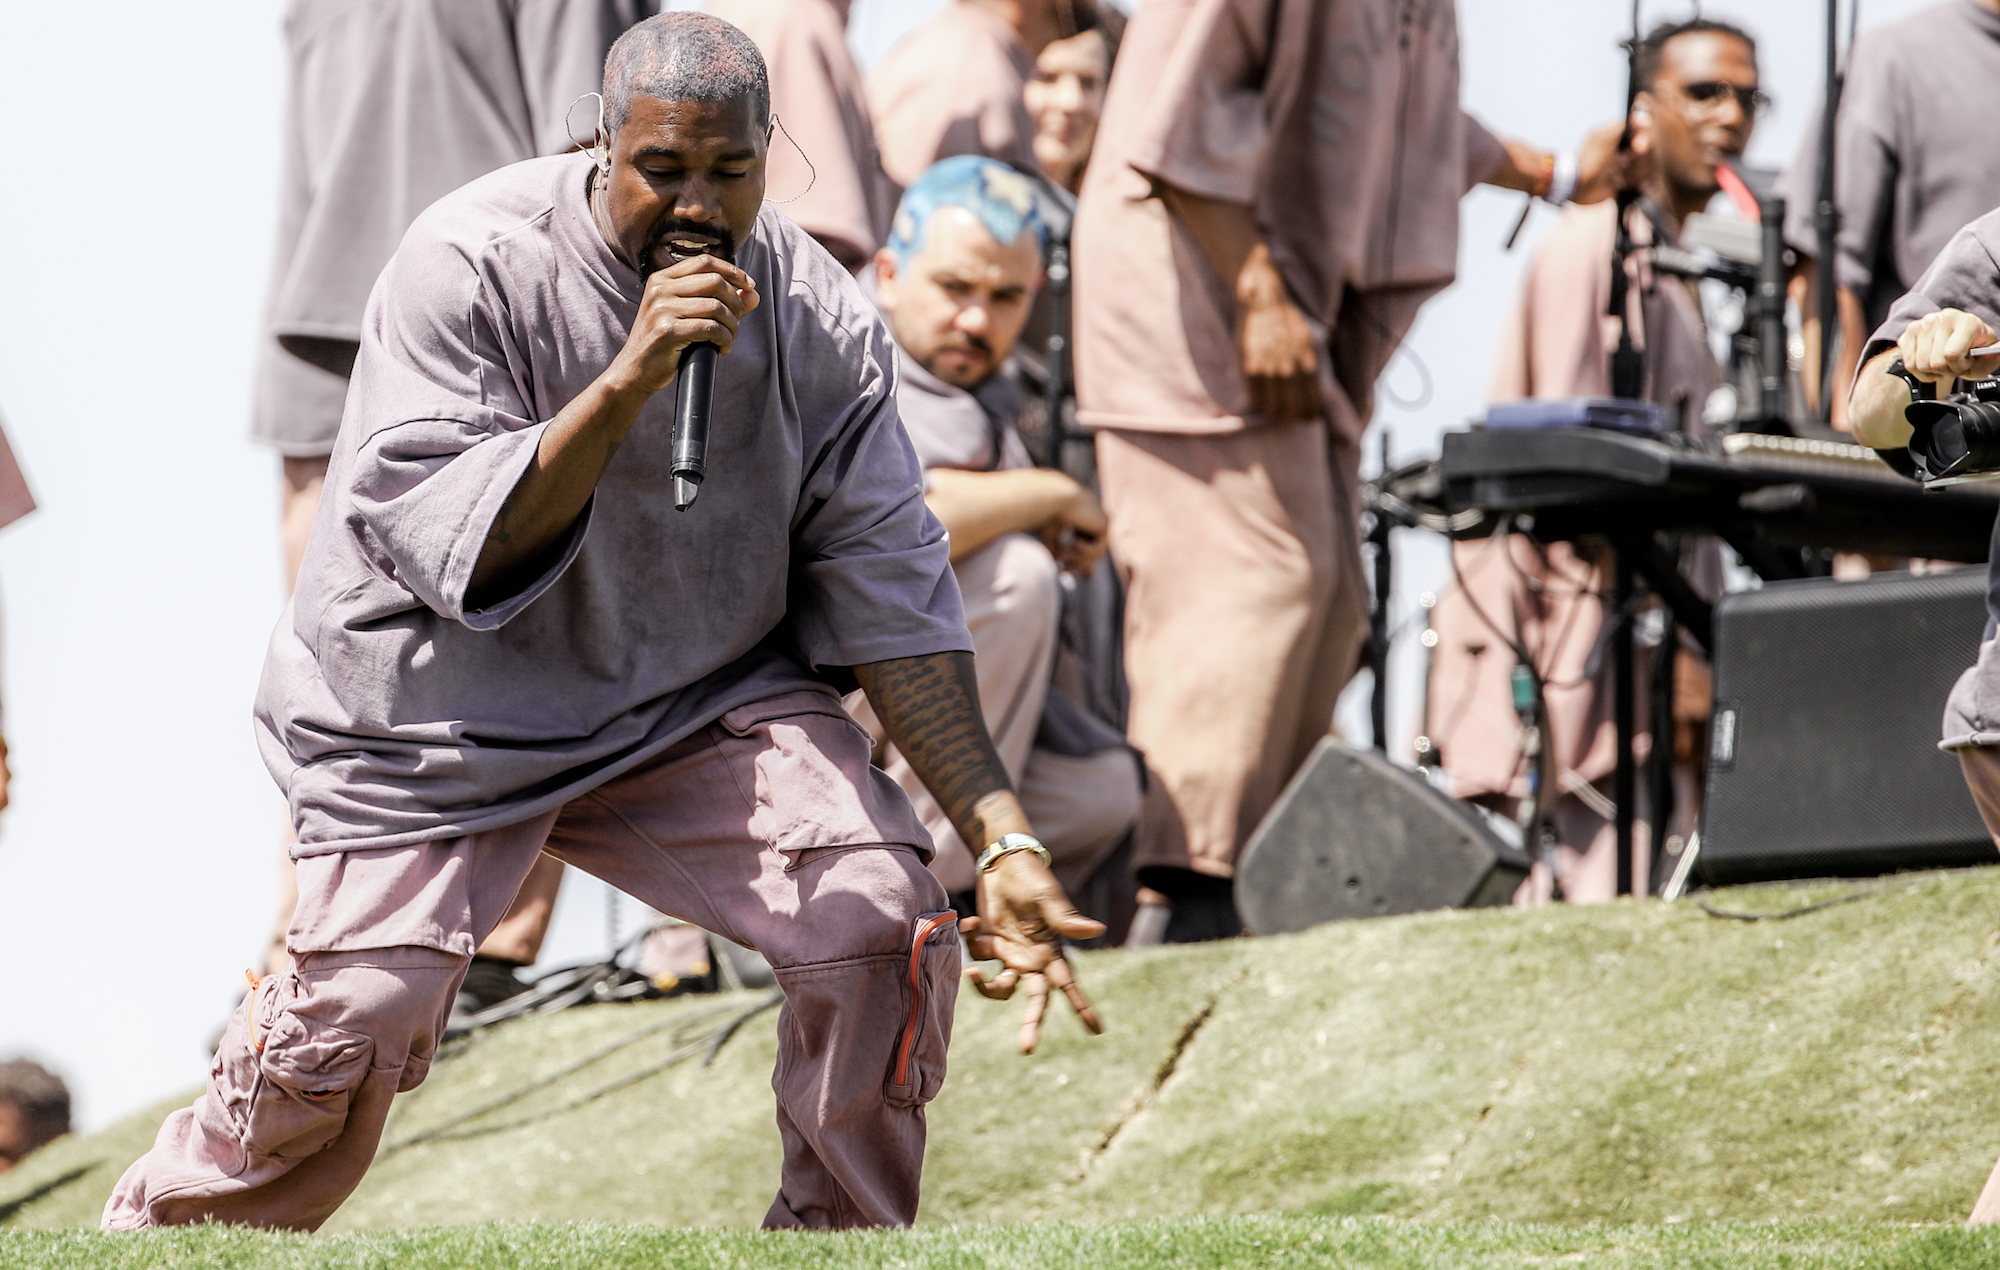 Listen to Kanye West's new Sunday Service album 'Jesus Is Born' - EpicNews